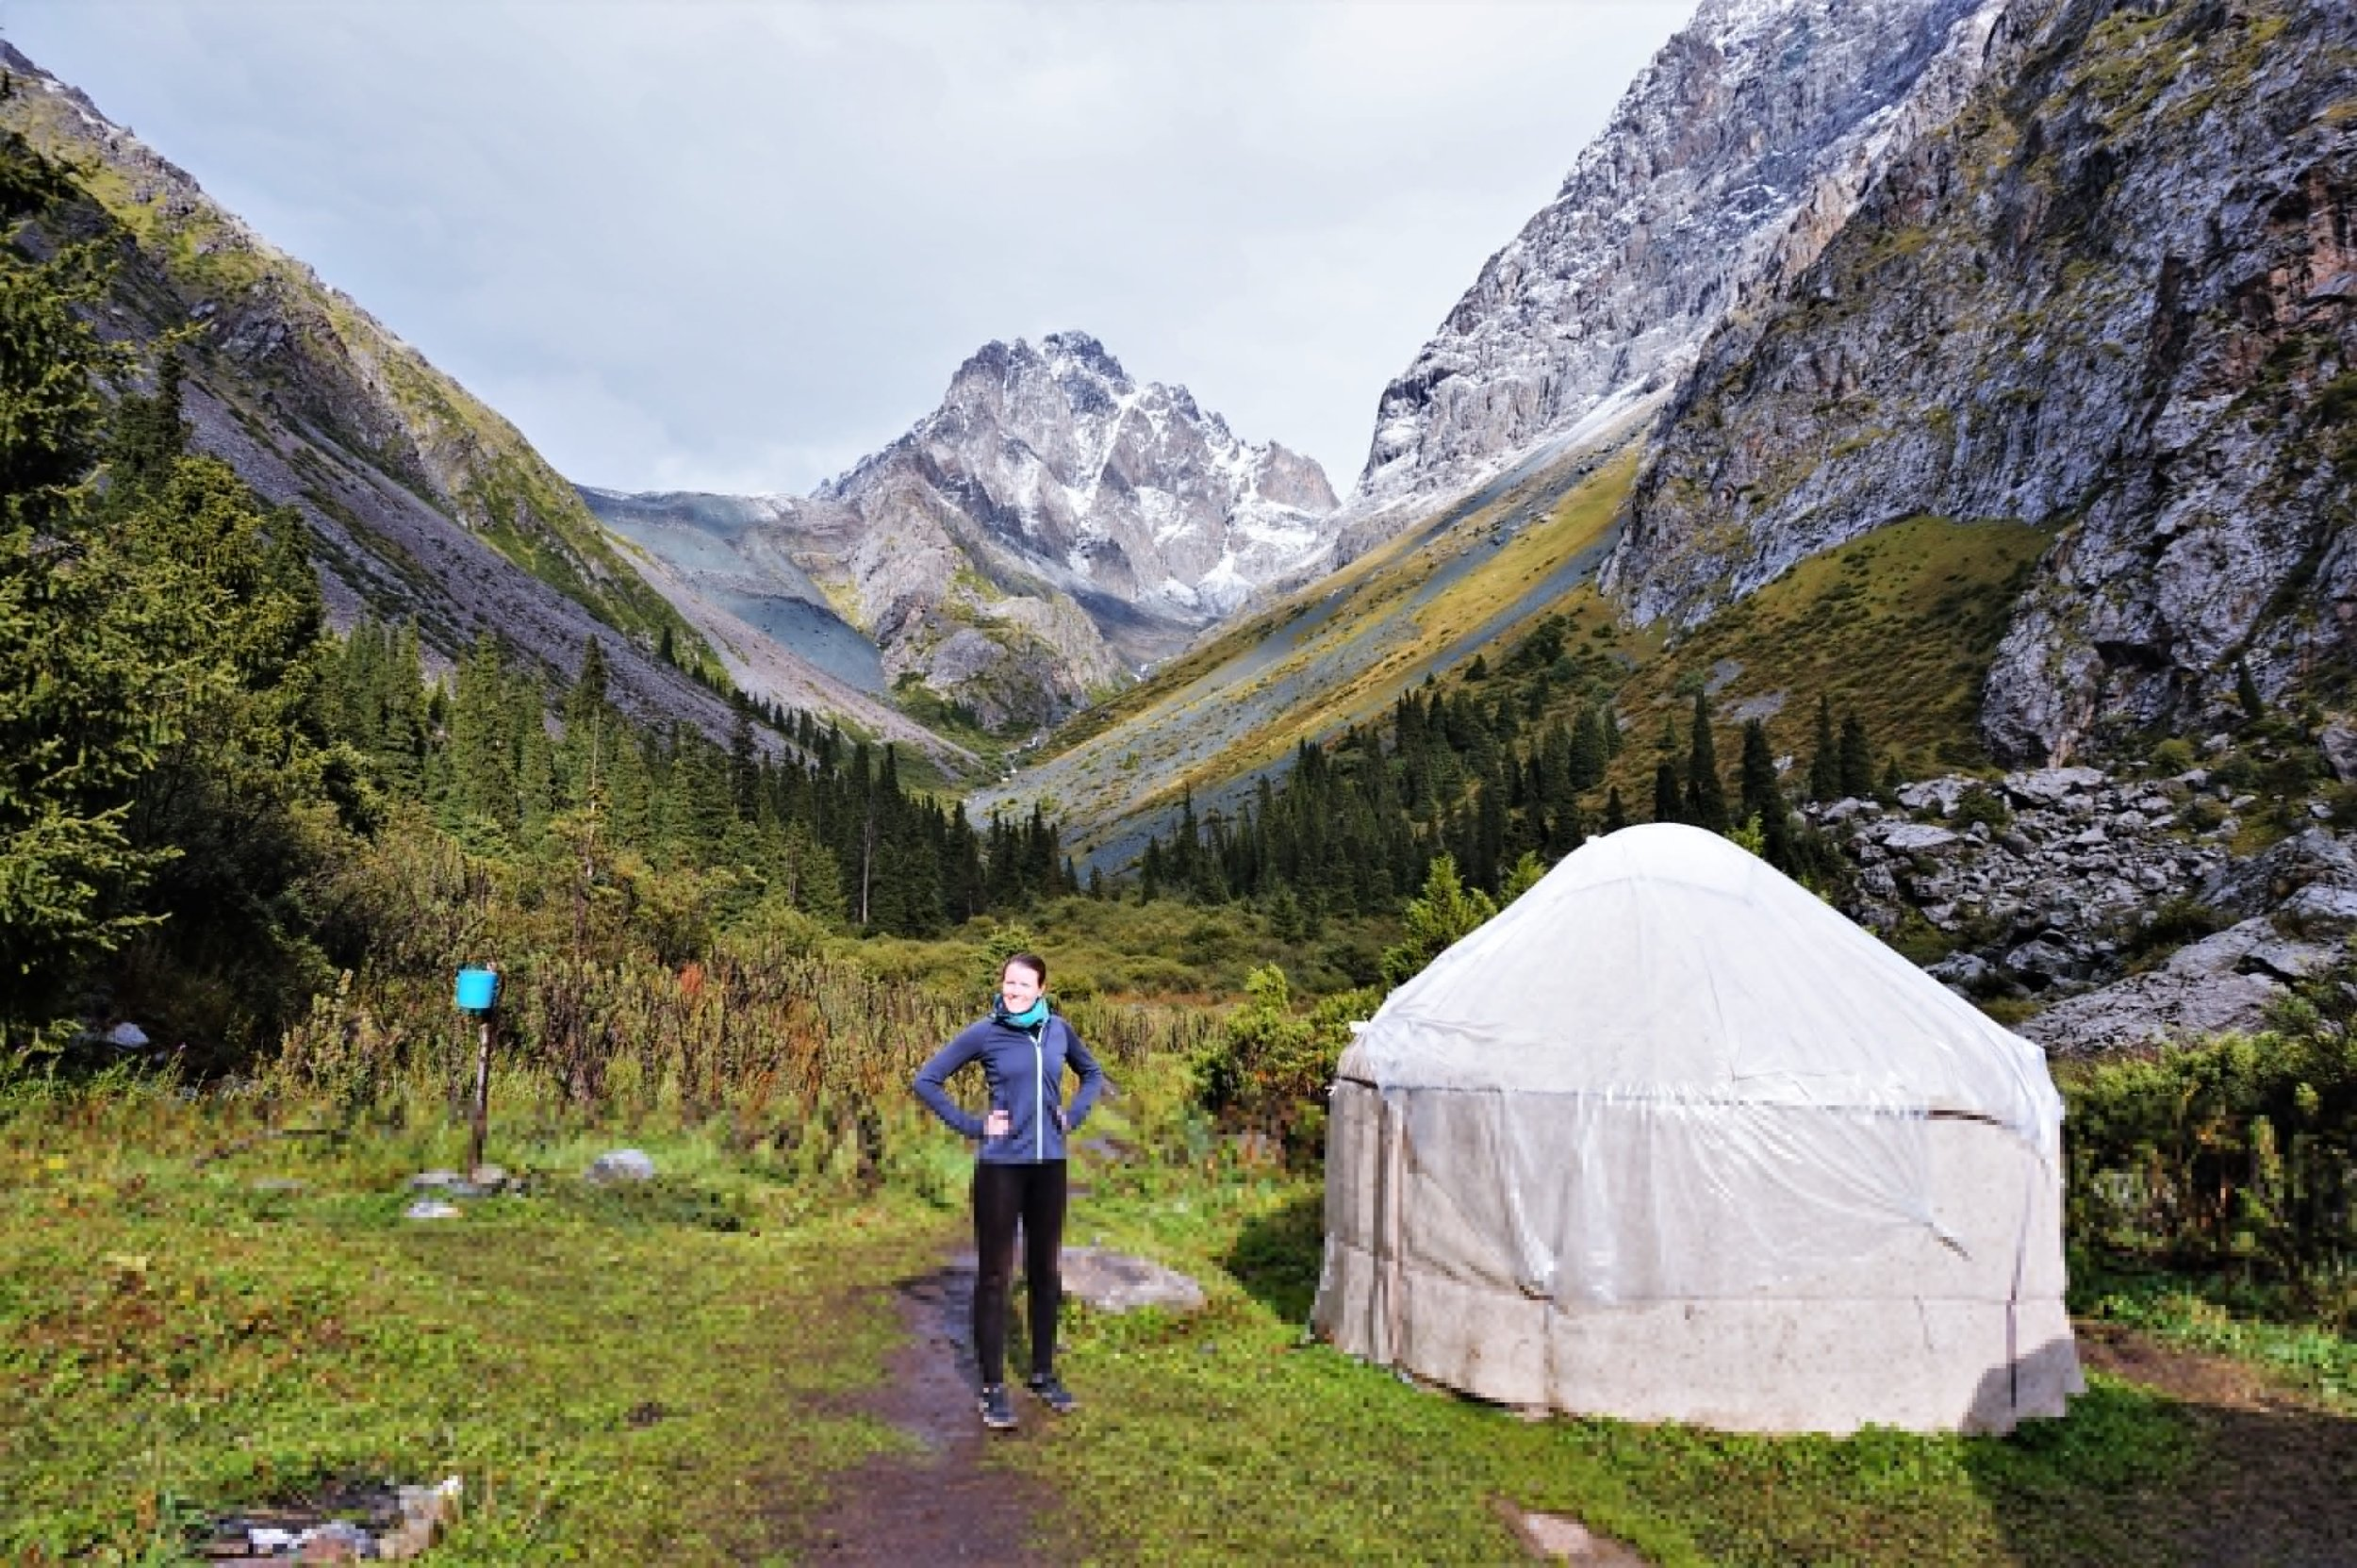 The Ala Kul trek is easily possible without a tent, there are yurt camps along the way. The kike to Ala Kul is one of the best hikes in Kyrgyzstan!